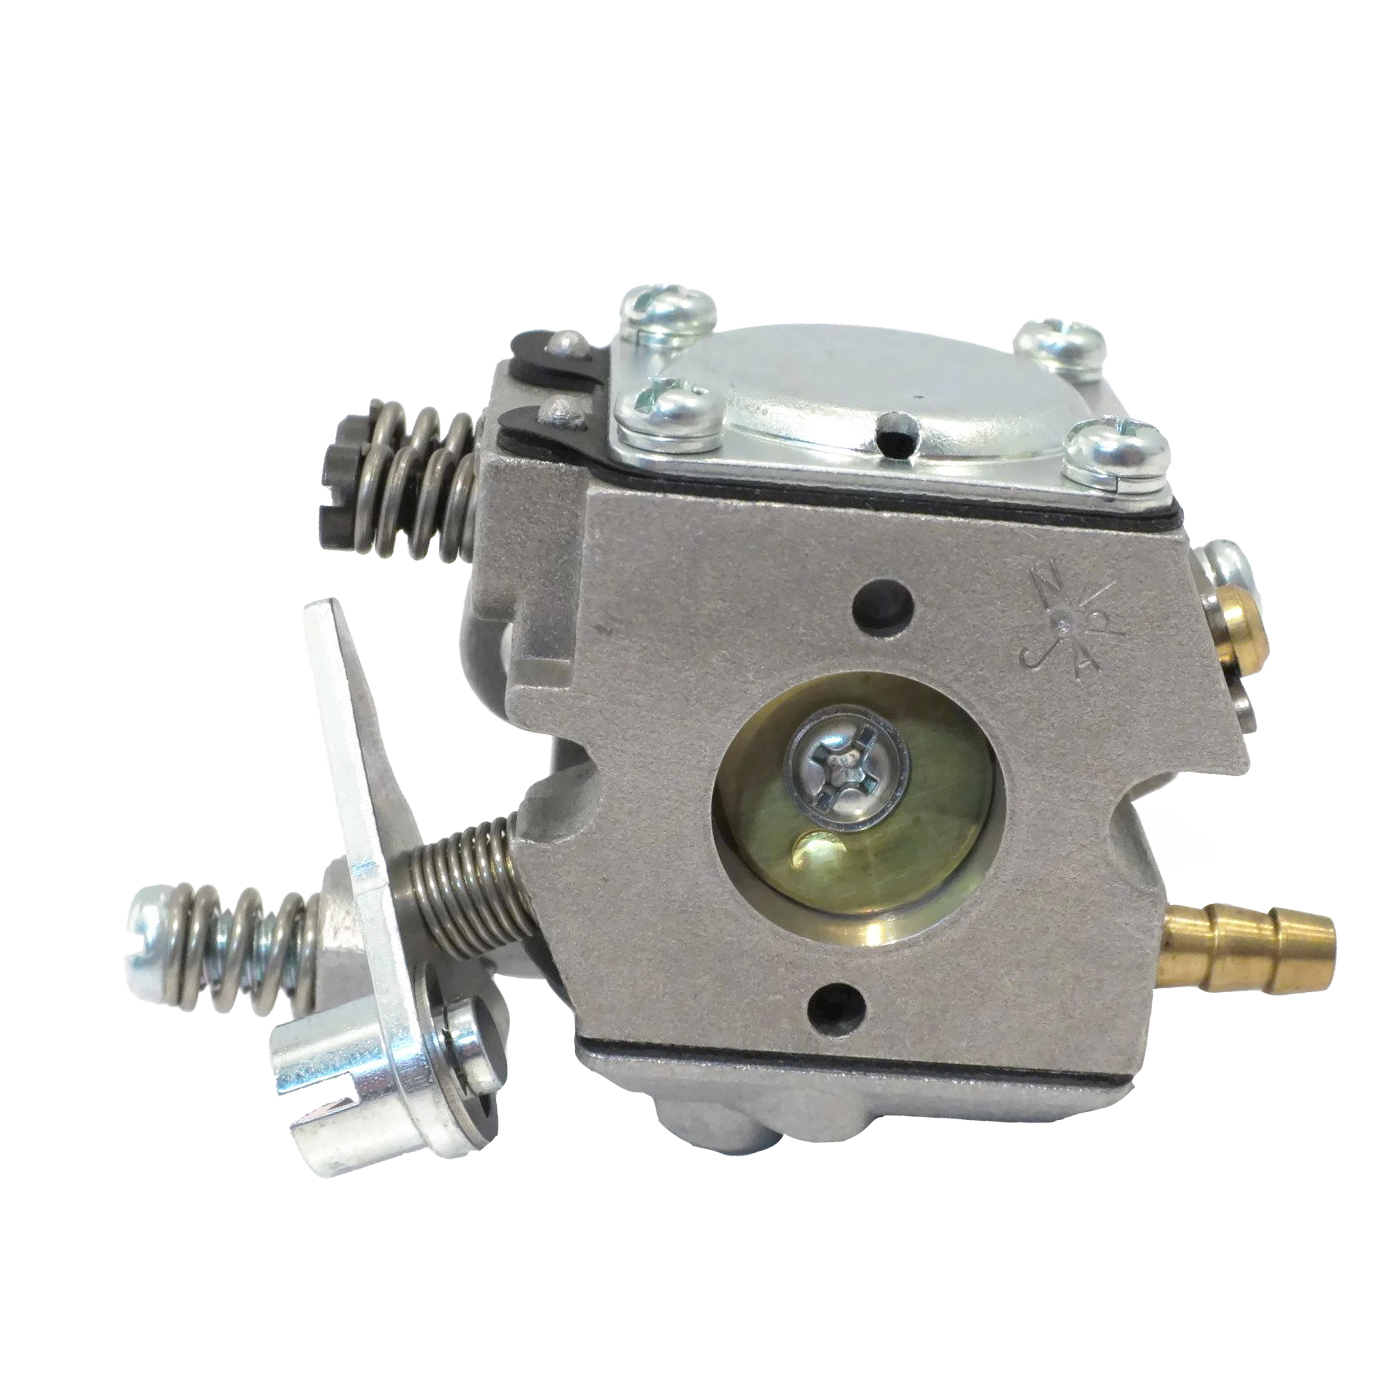 Walbro Carburetor for Echo S2AP1, 2 SRM200DA, GT-200 String Trimmers & Others WA-59-1